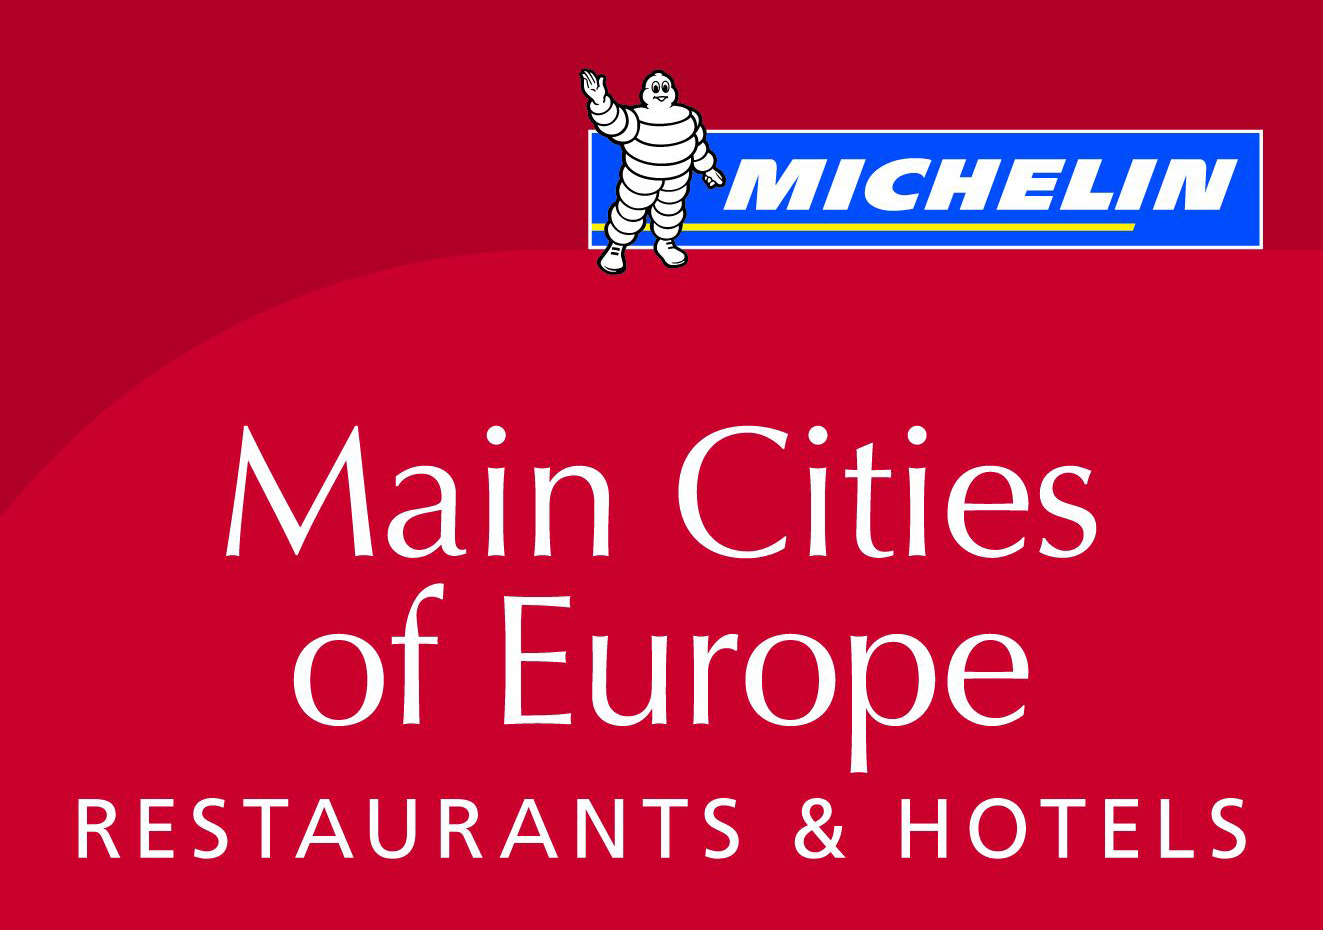 Guía Michelin 2015